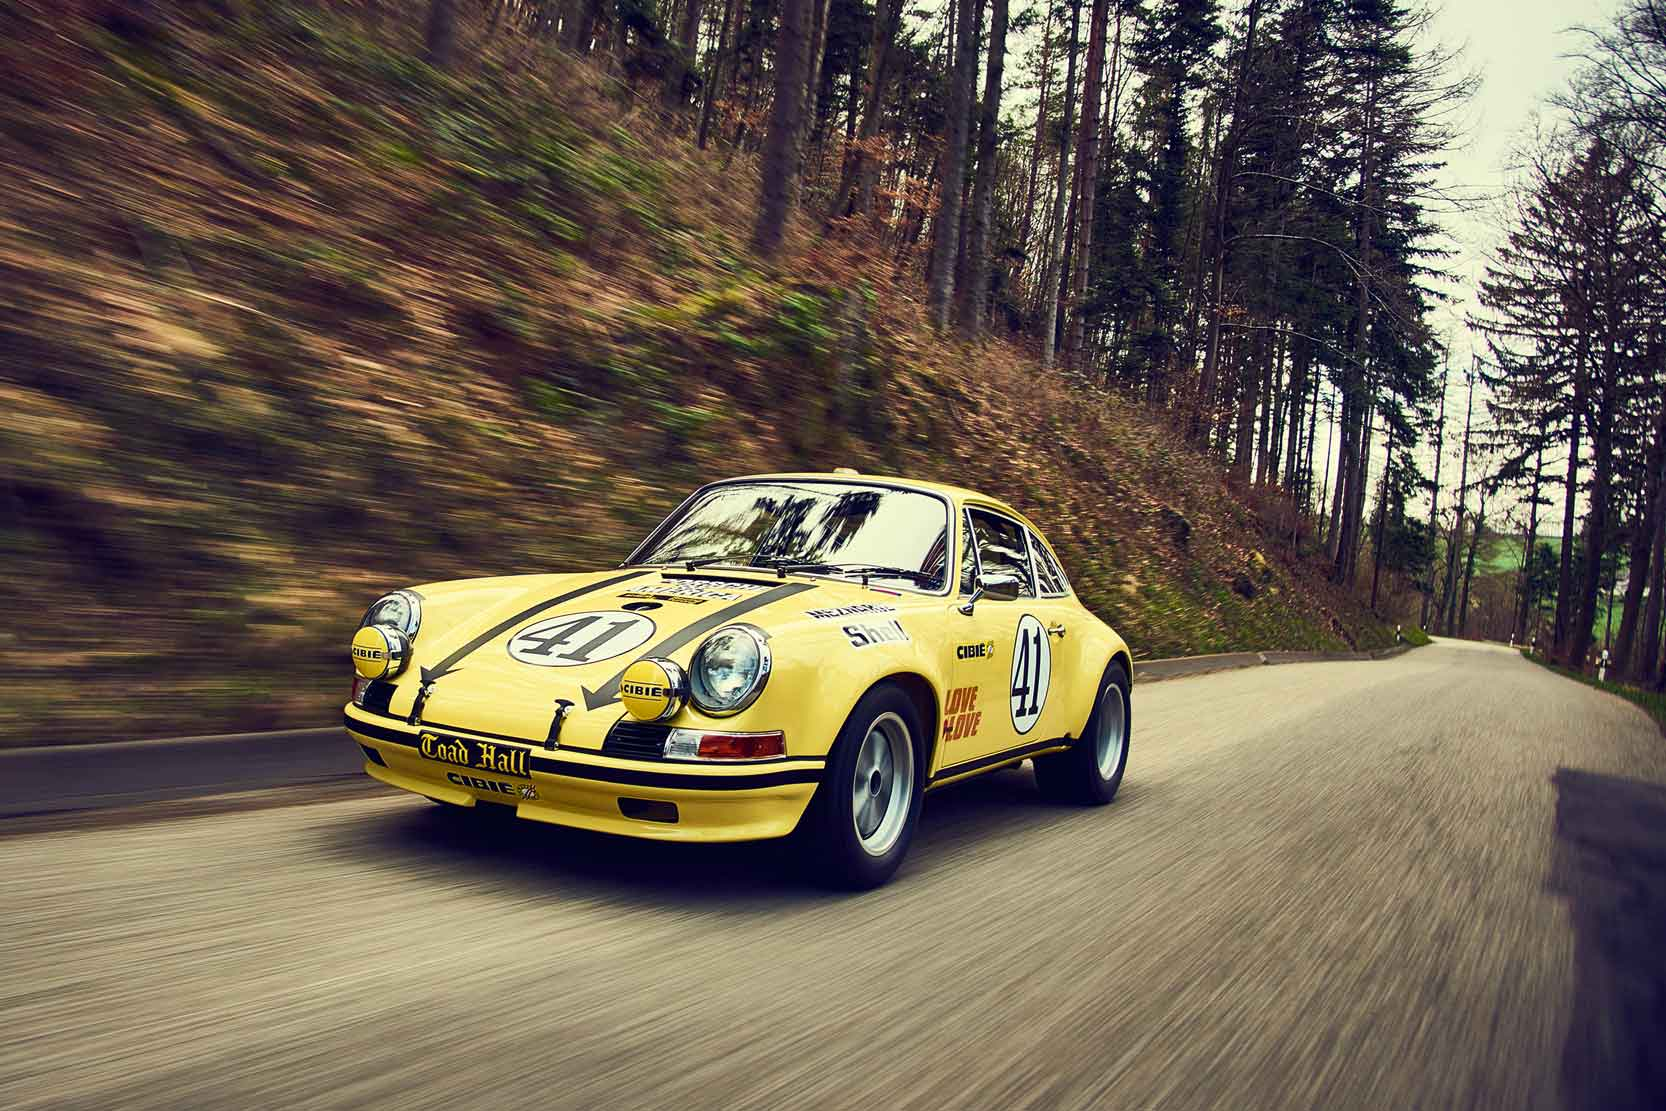 Exterieur_Porsche-911-2-5-ST-Take-Two_7